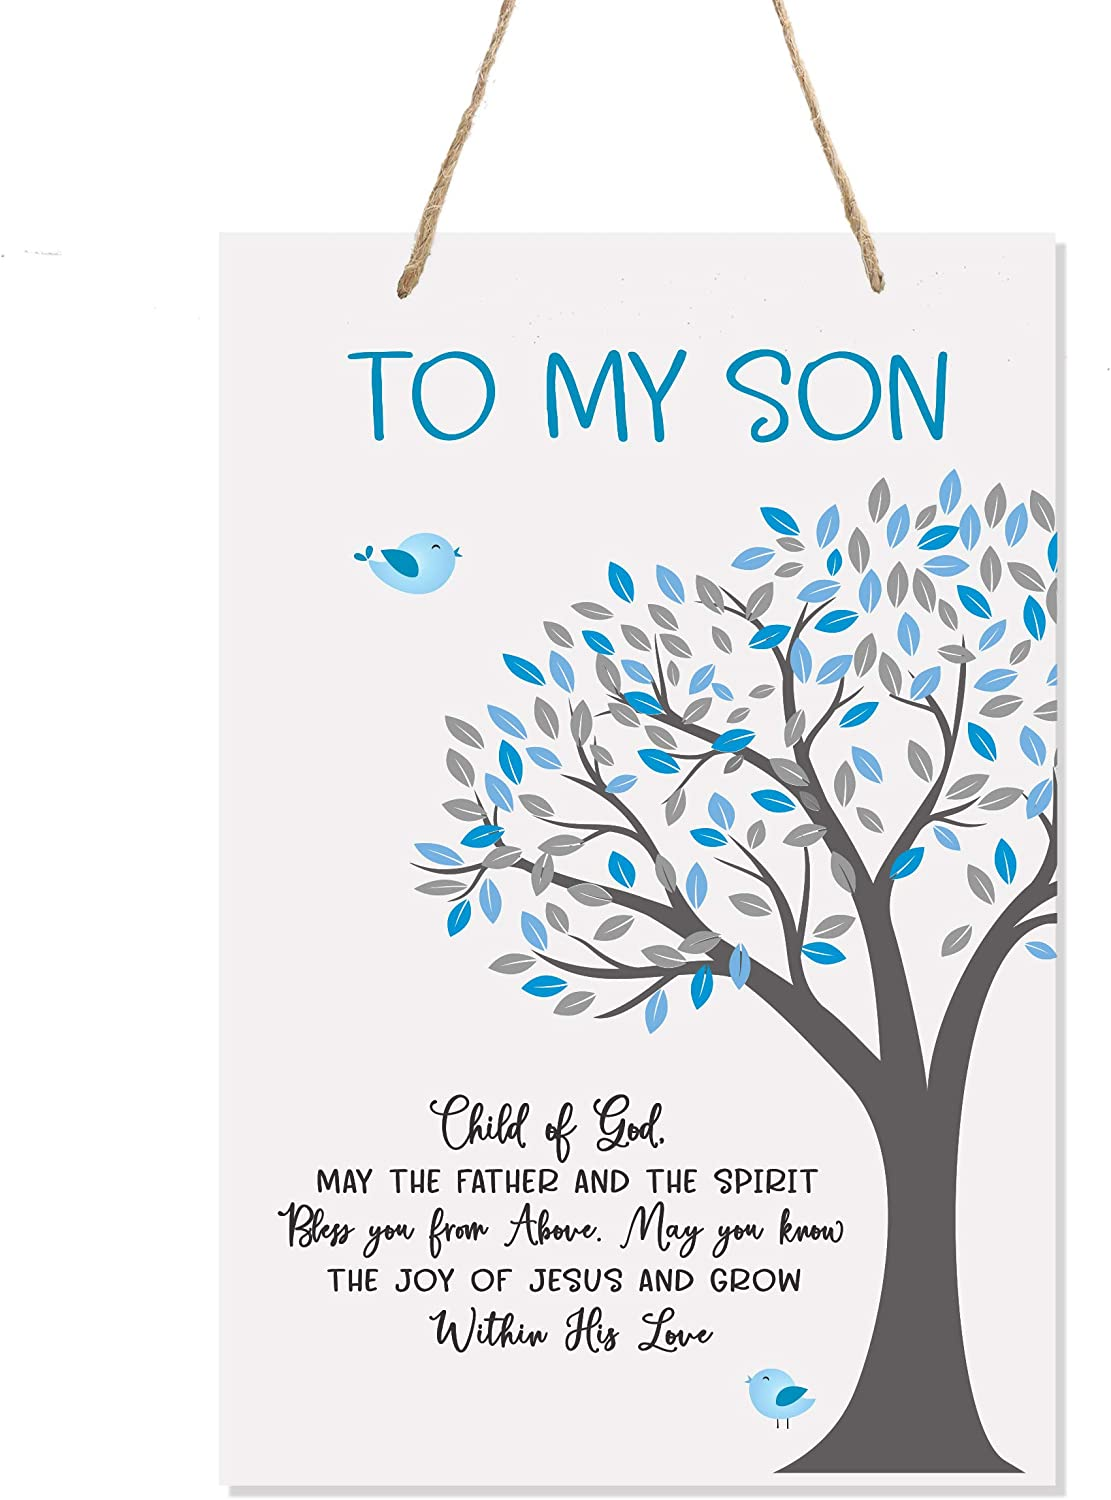 LifeSong Milestones Nursery Decor for My Son or Daughter - Girls and Boys Happy Birthday Wishes Gift Ideas Father and Spirit - Wall Hanging Sign from Mom and Dad 8x12 (Son)